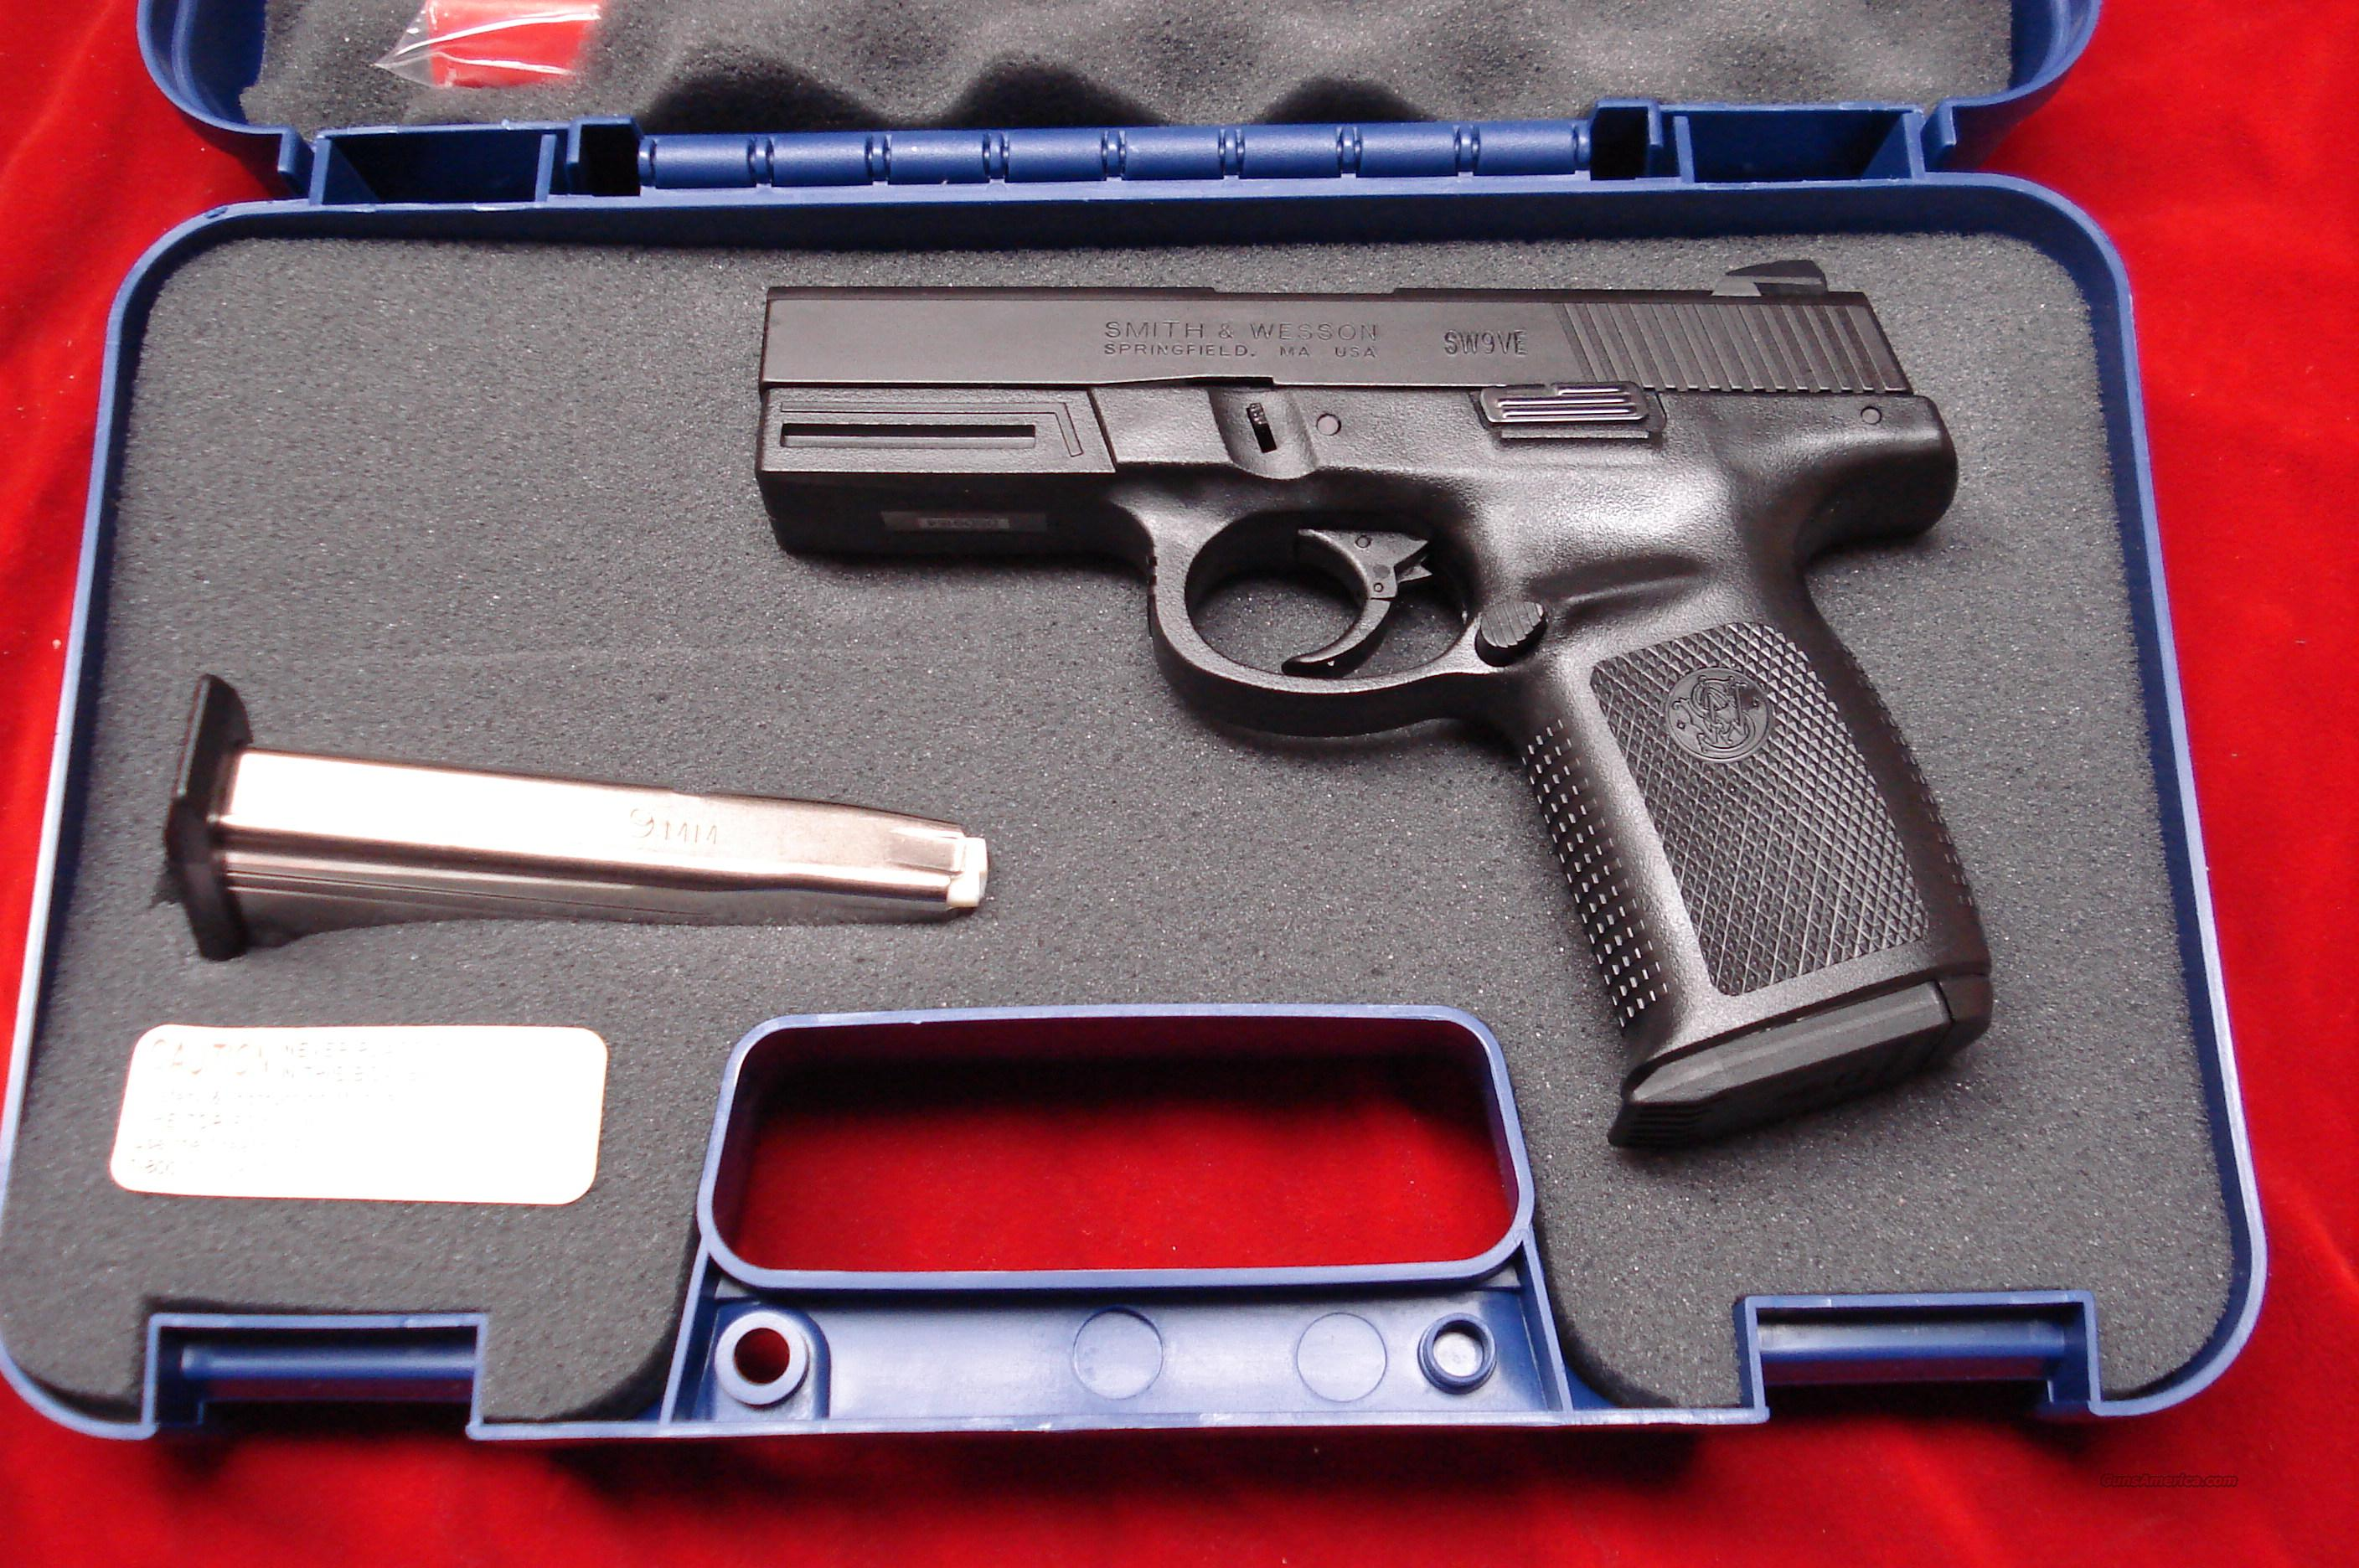 SMITH AND WESSON SIGMA  9MM HIGH CAP NEW   Guns > Pistols > Smith & Wesson Pistols - Autos > Polymer Frame